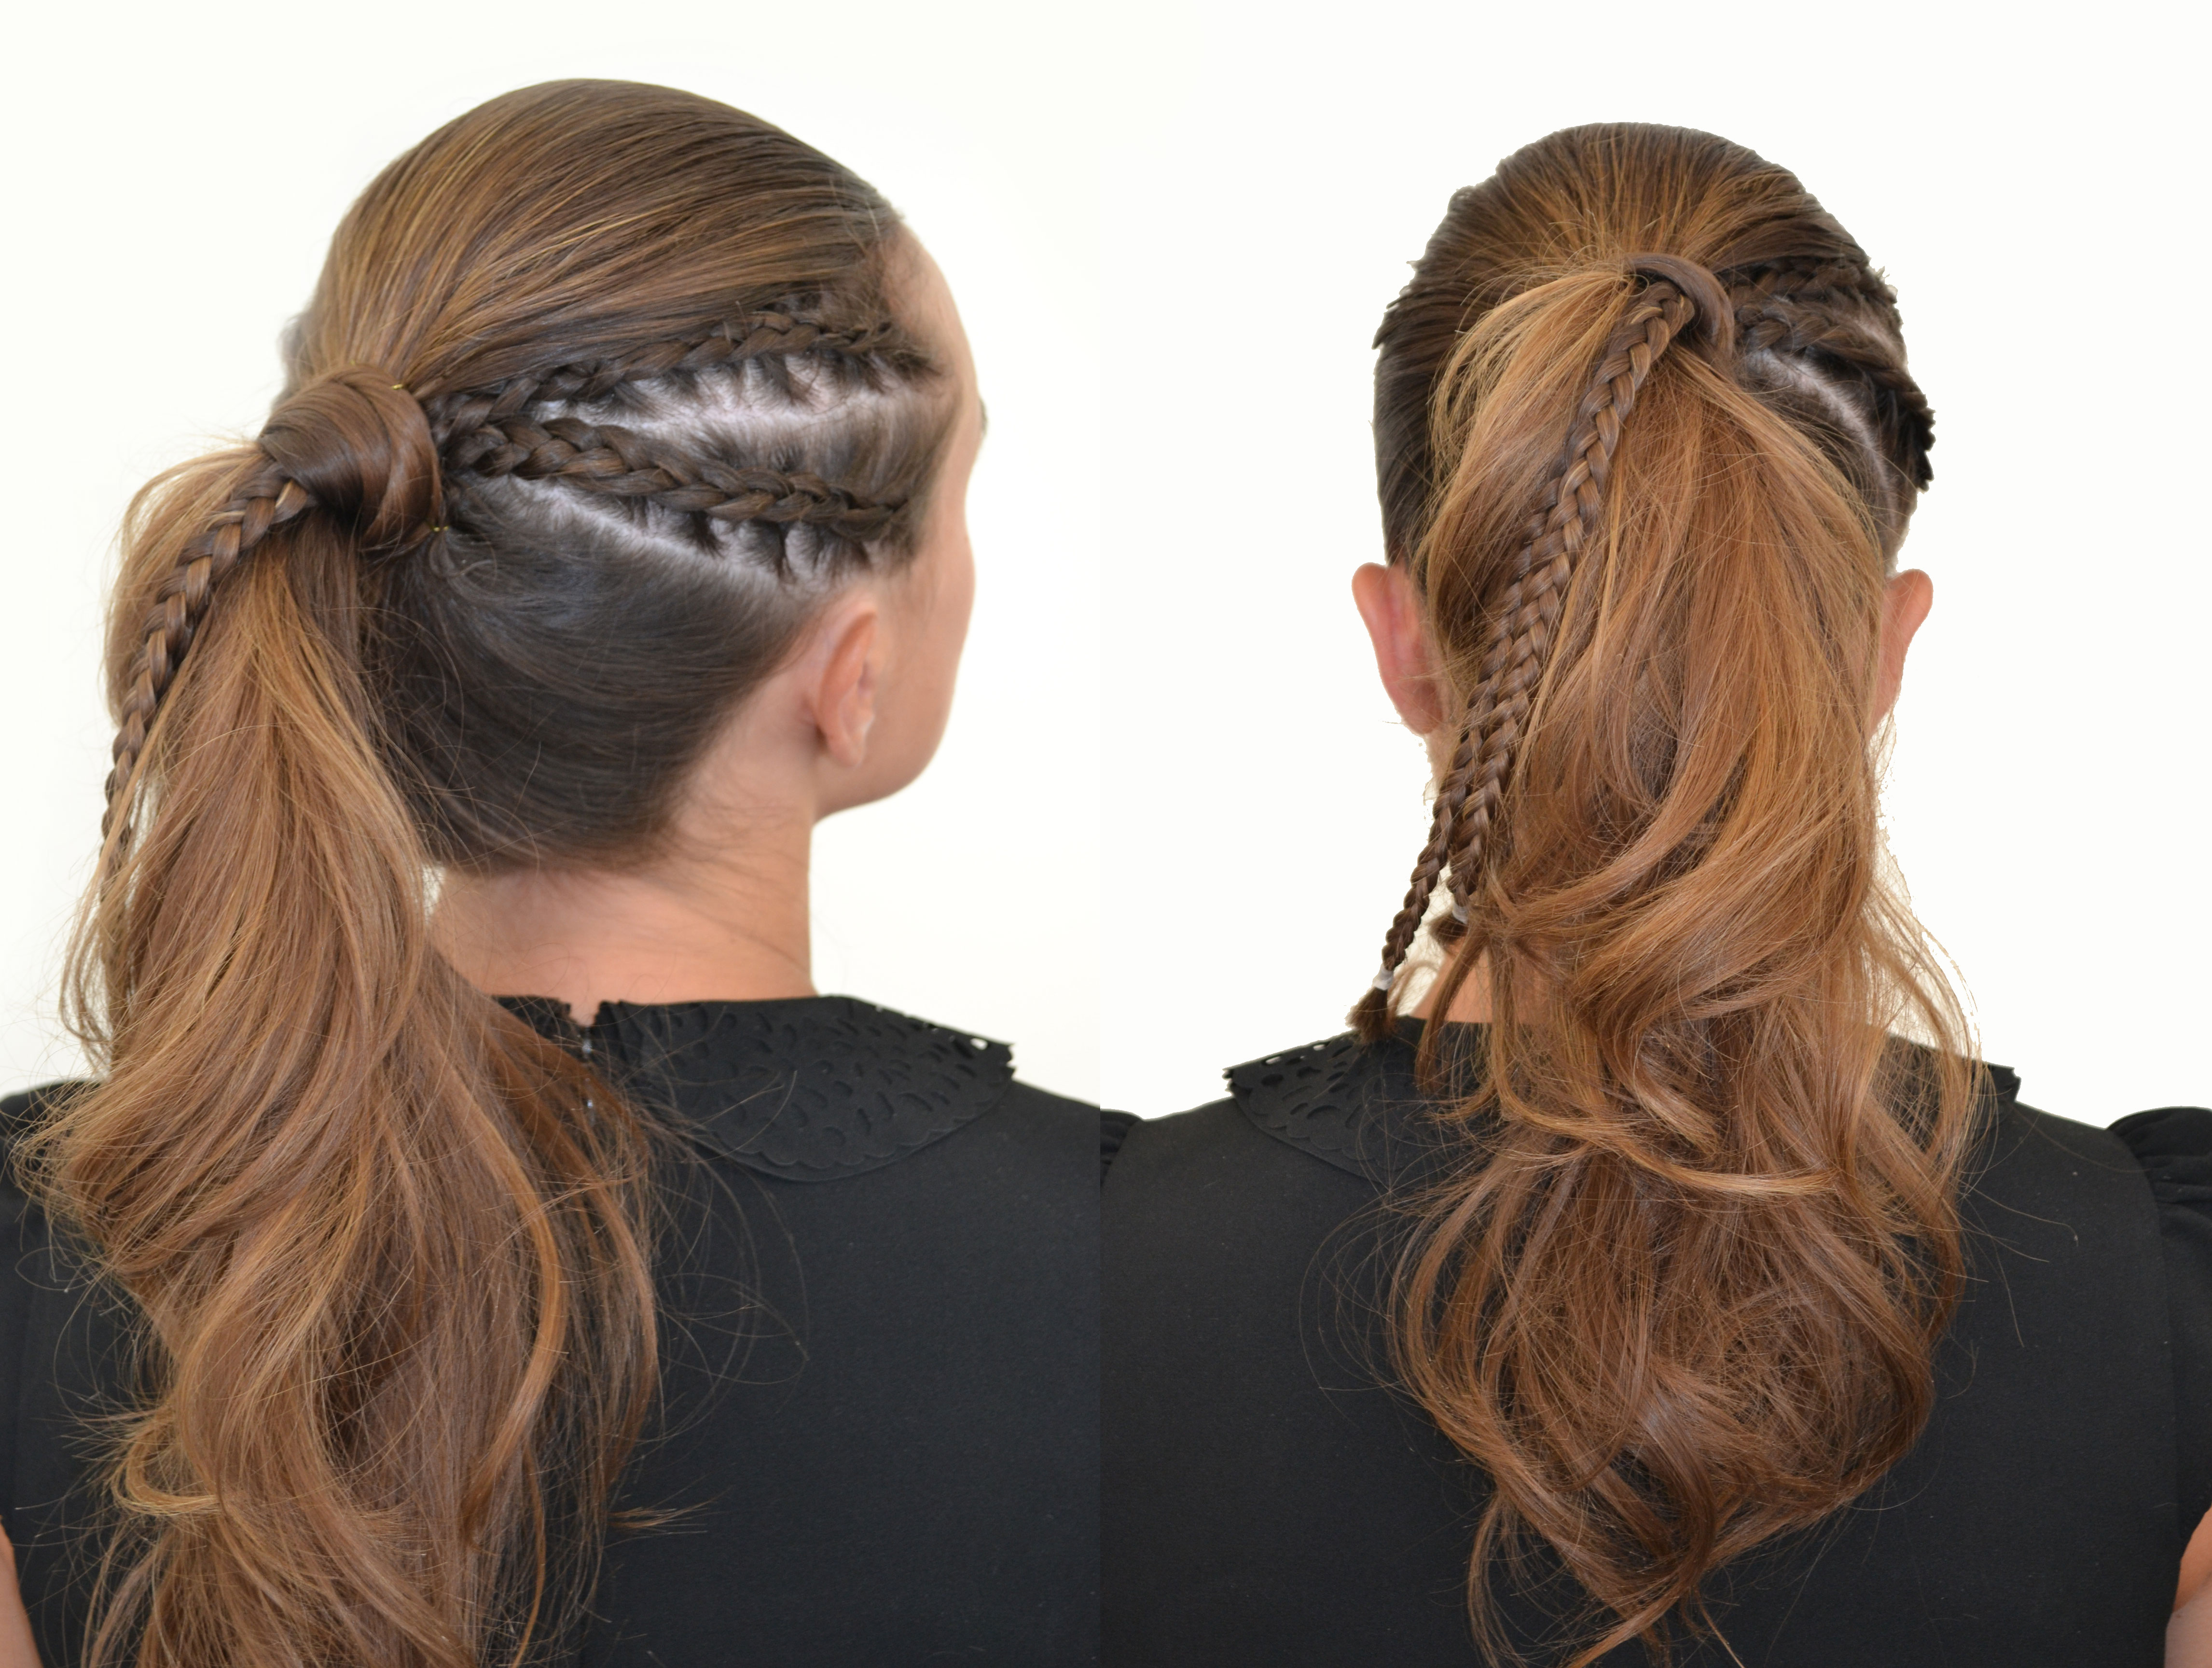 HOW-TO: Tri-Look Ponytail - A Different Take on The Standard Pony